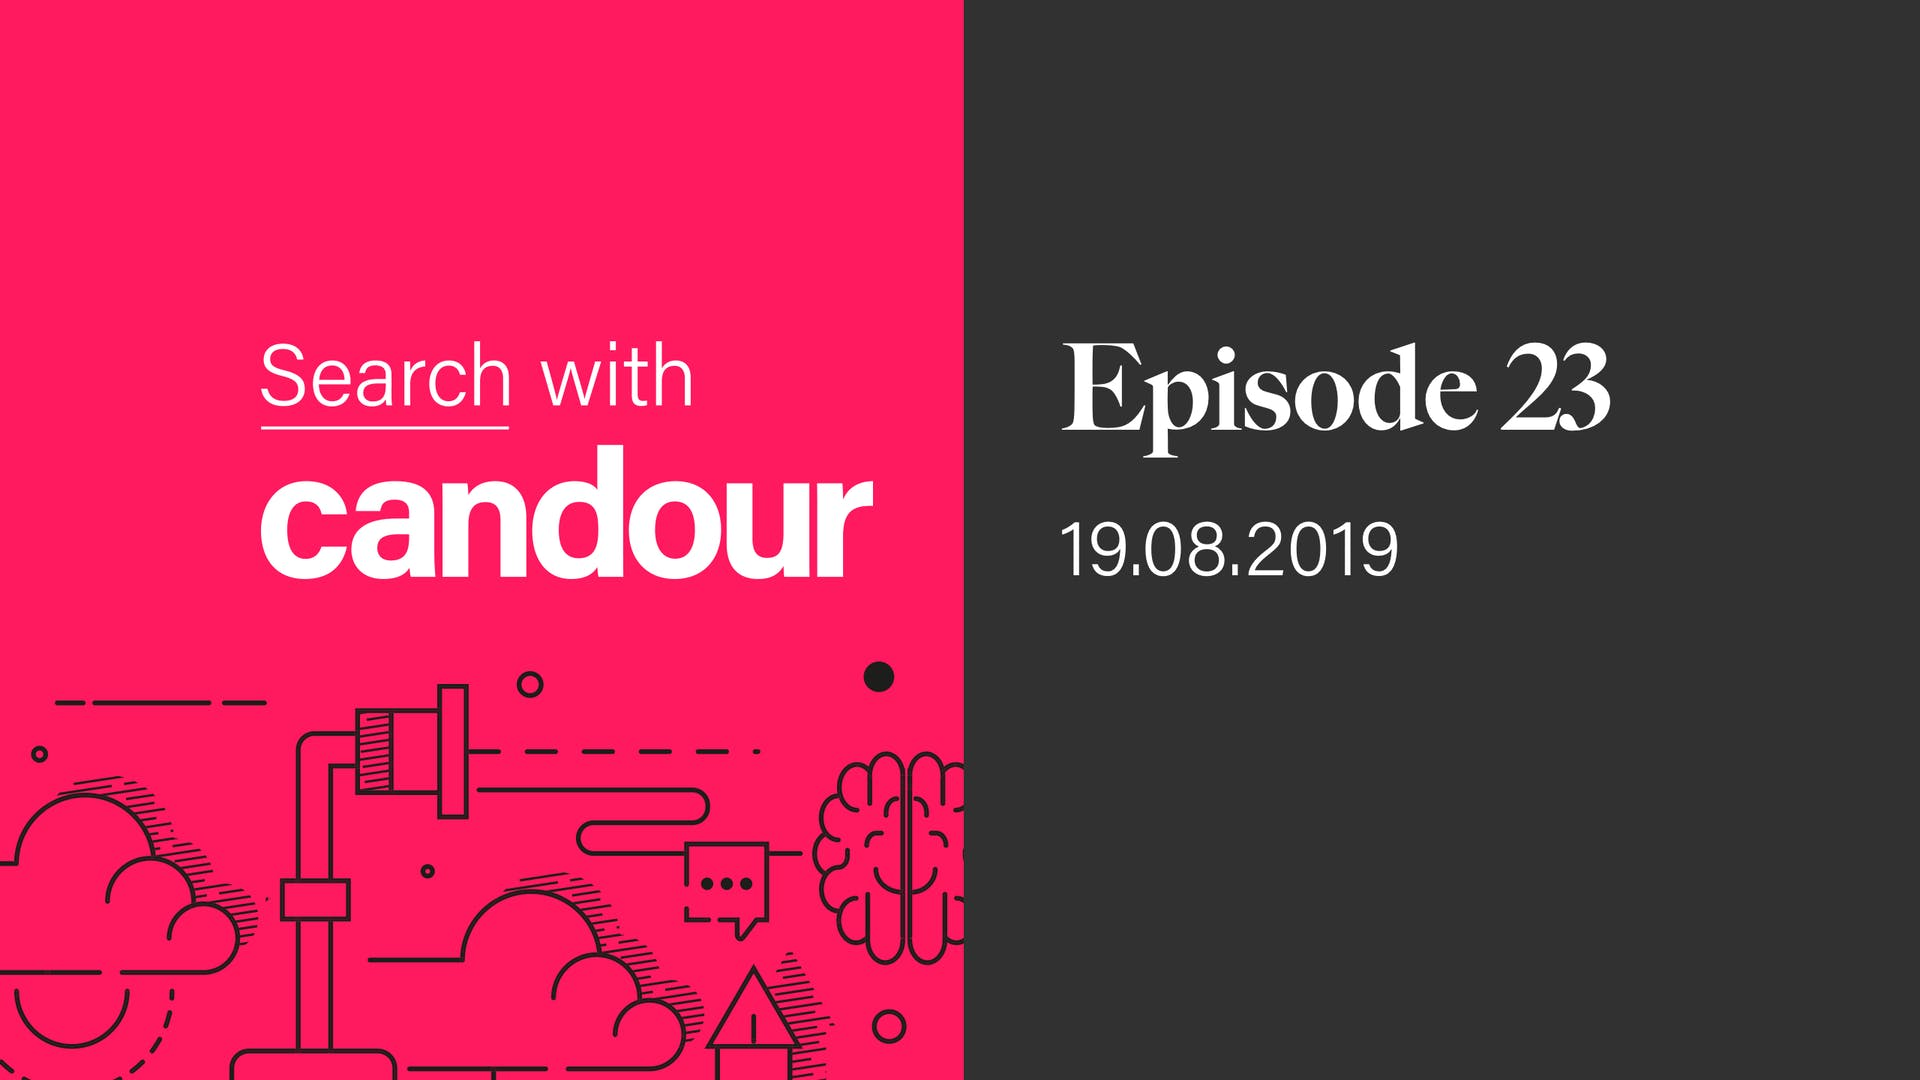 Search with Candour - Episode 23